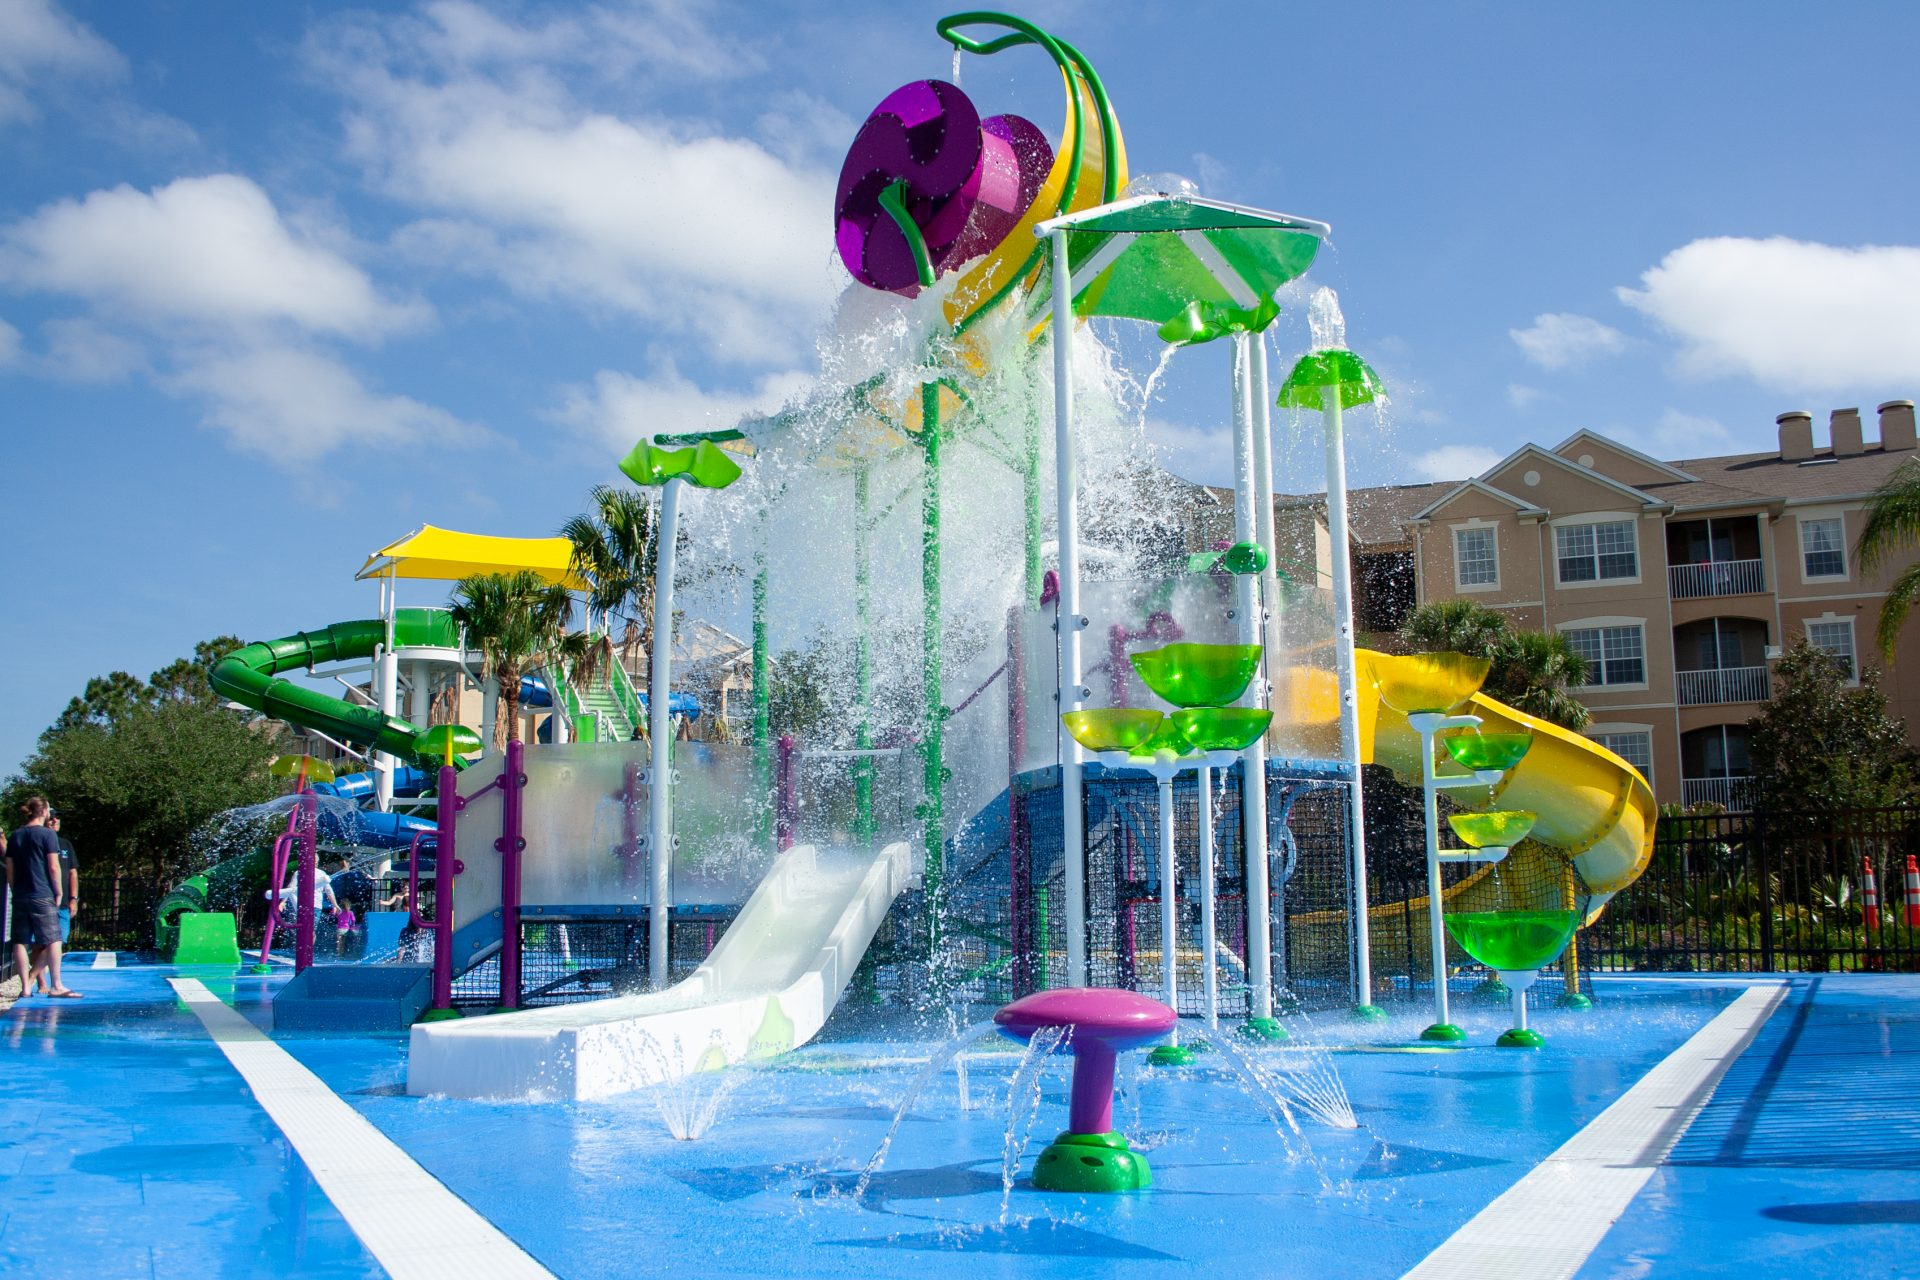 Windsor Hills aquatic play structure with kids slides and water wheel designed by Martin Aquatic